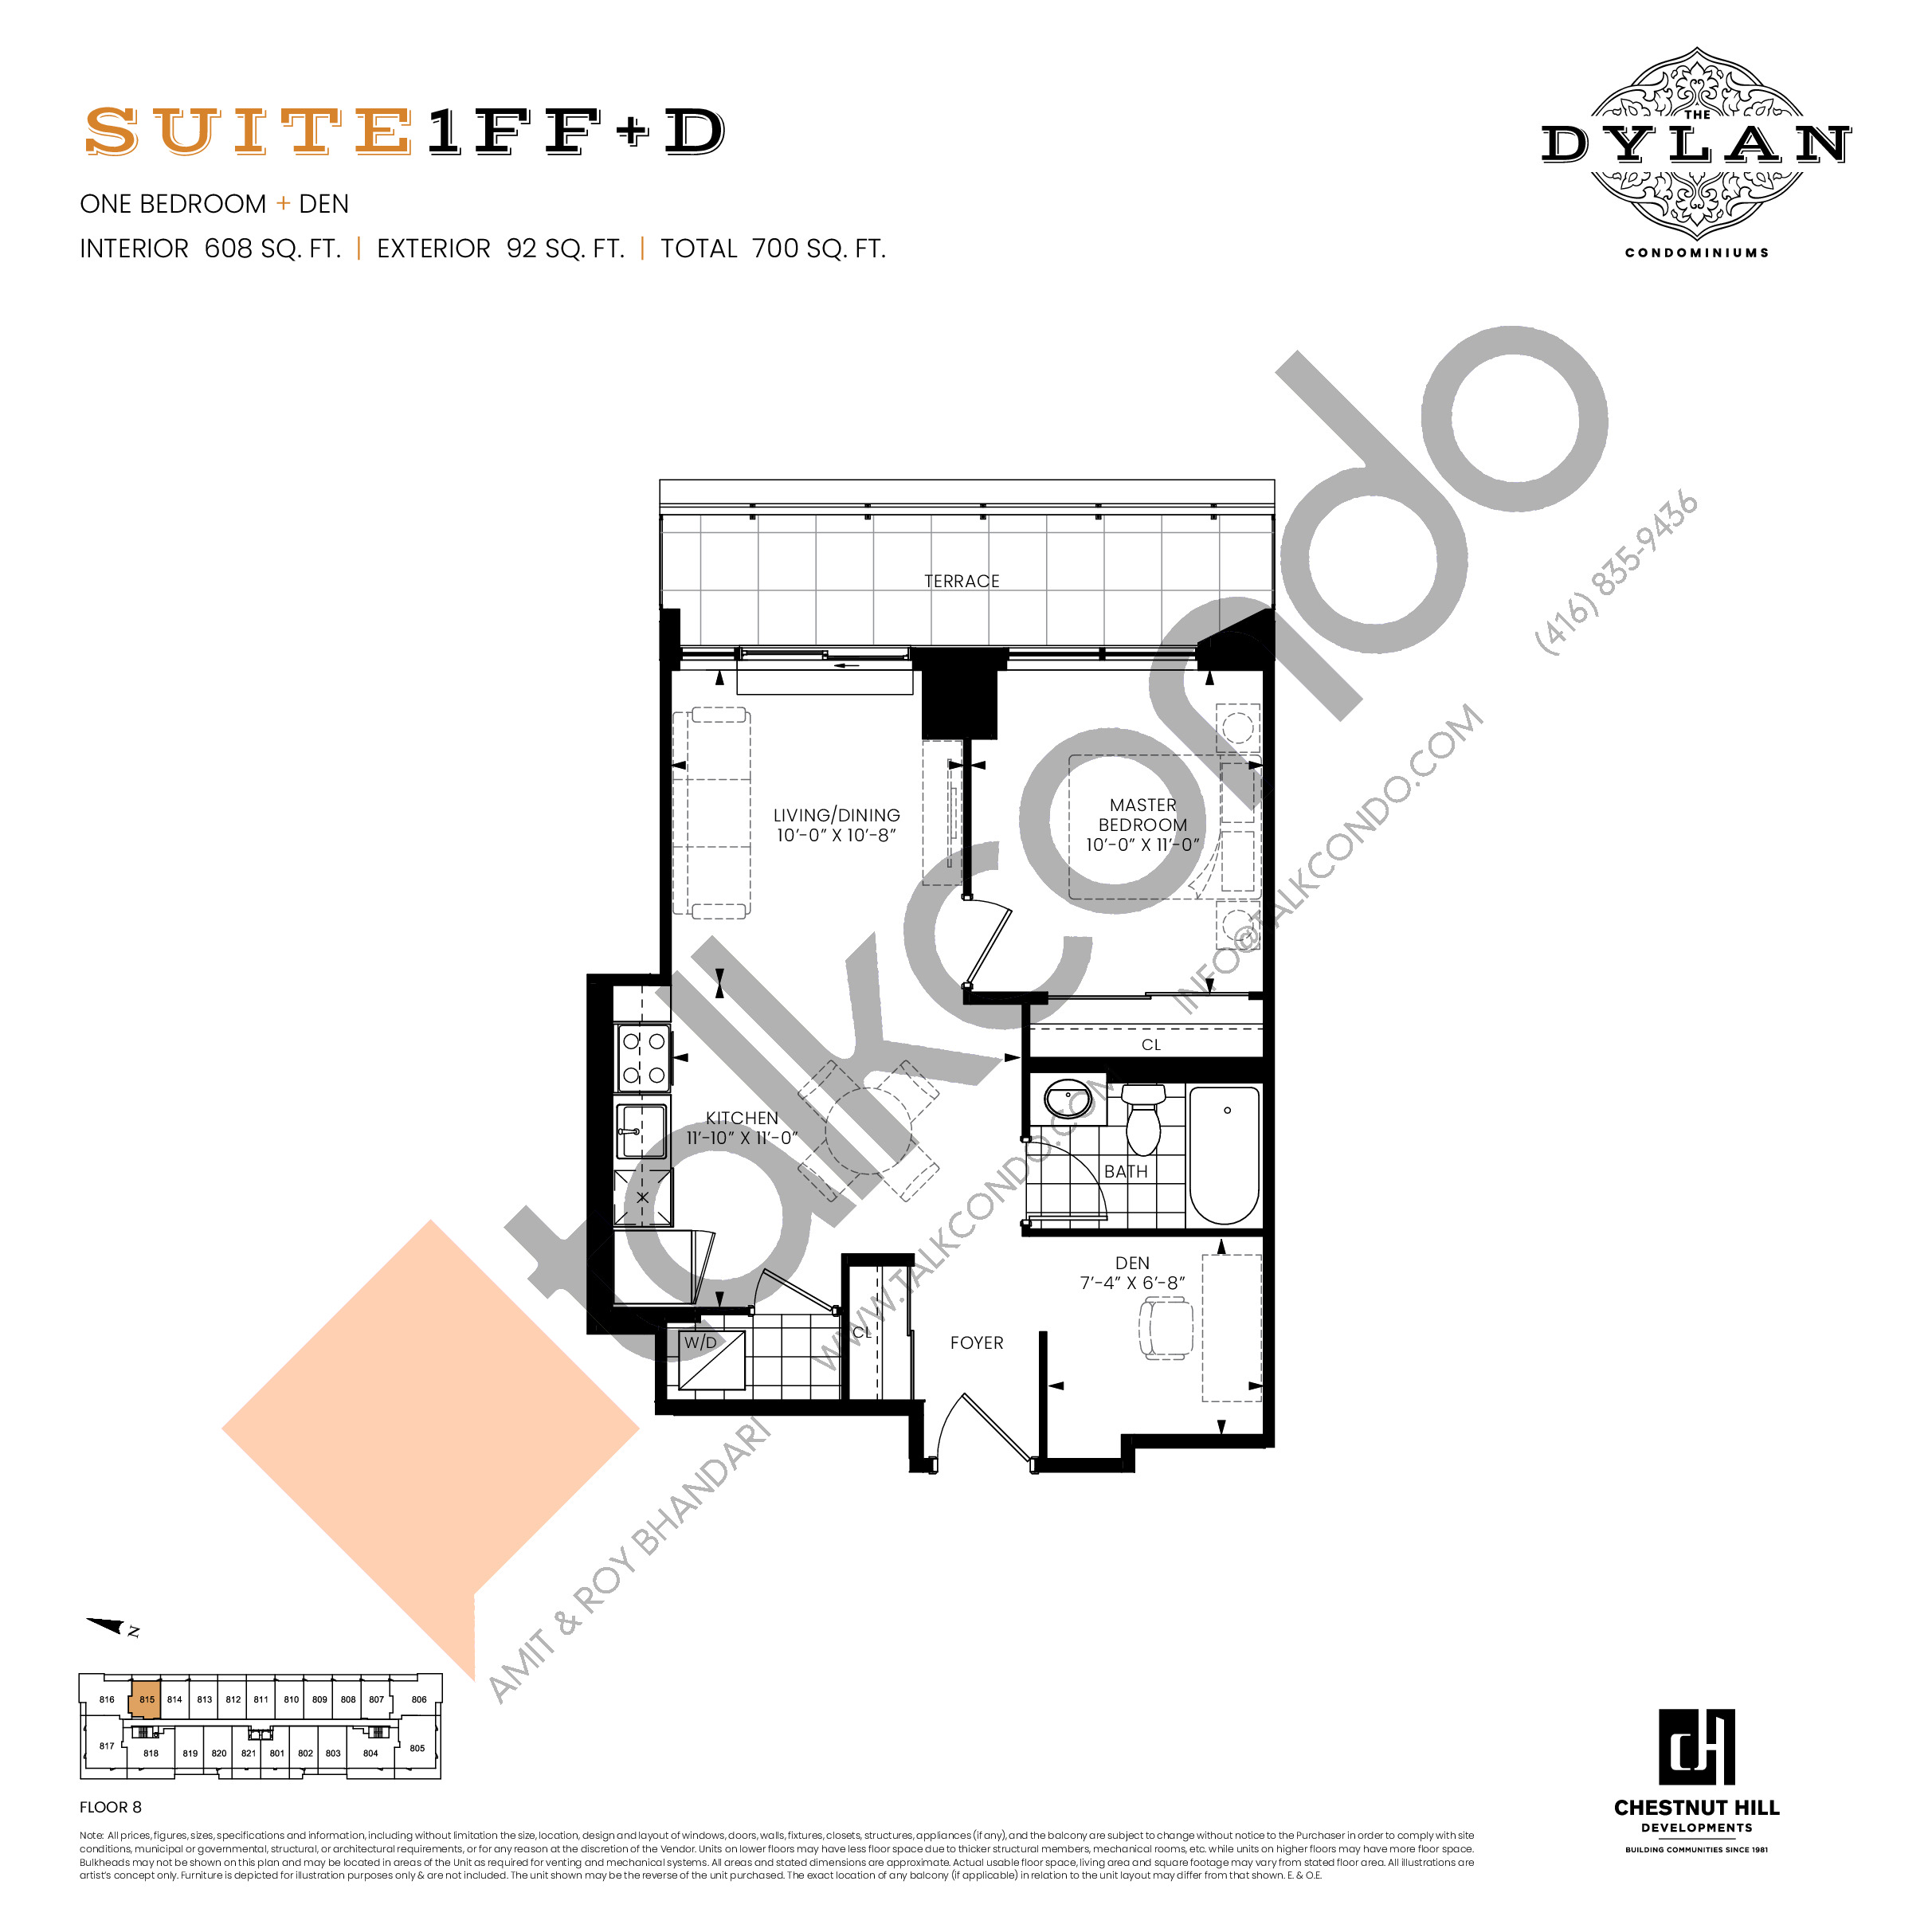 Suite 1FF+D Floor Plan at The Dylan Condos - 608 sq.ft